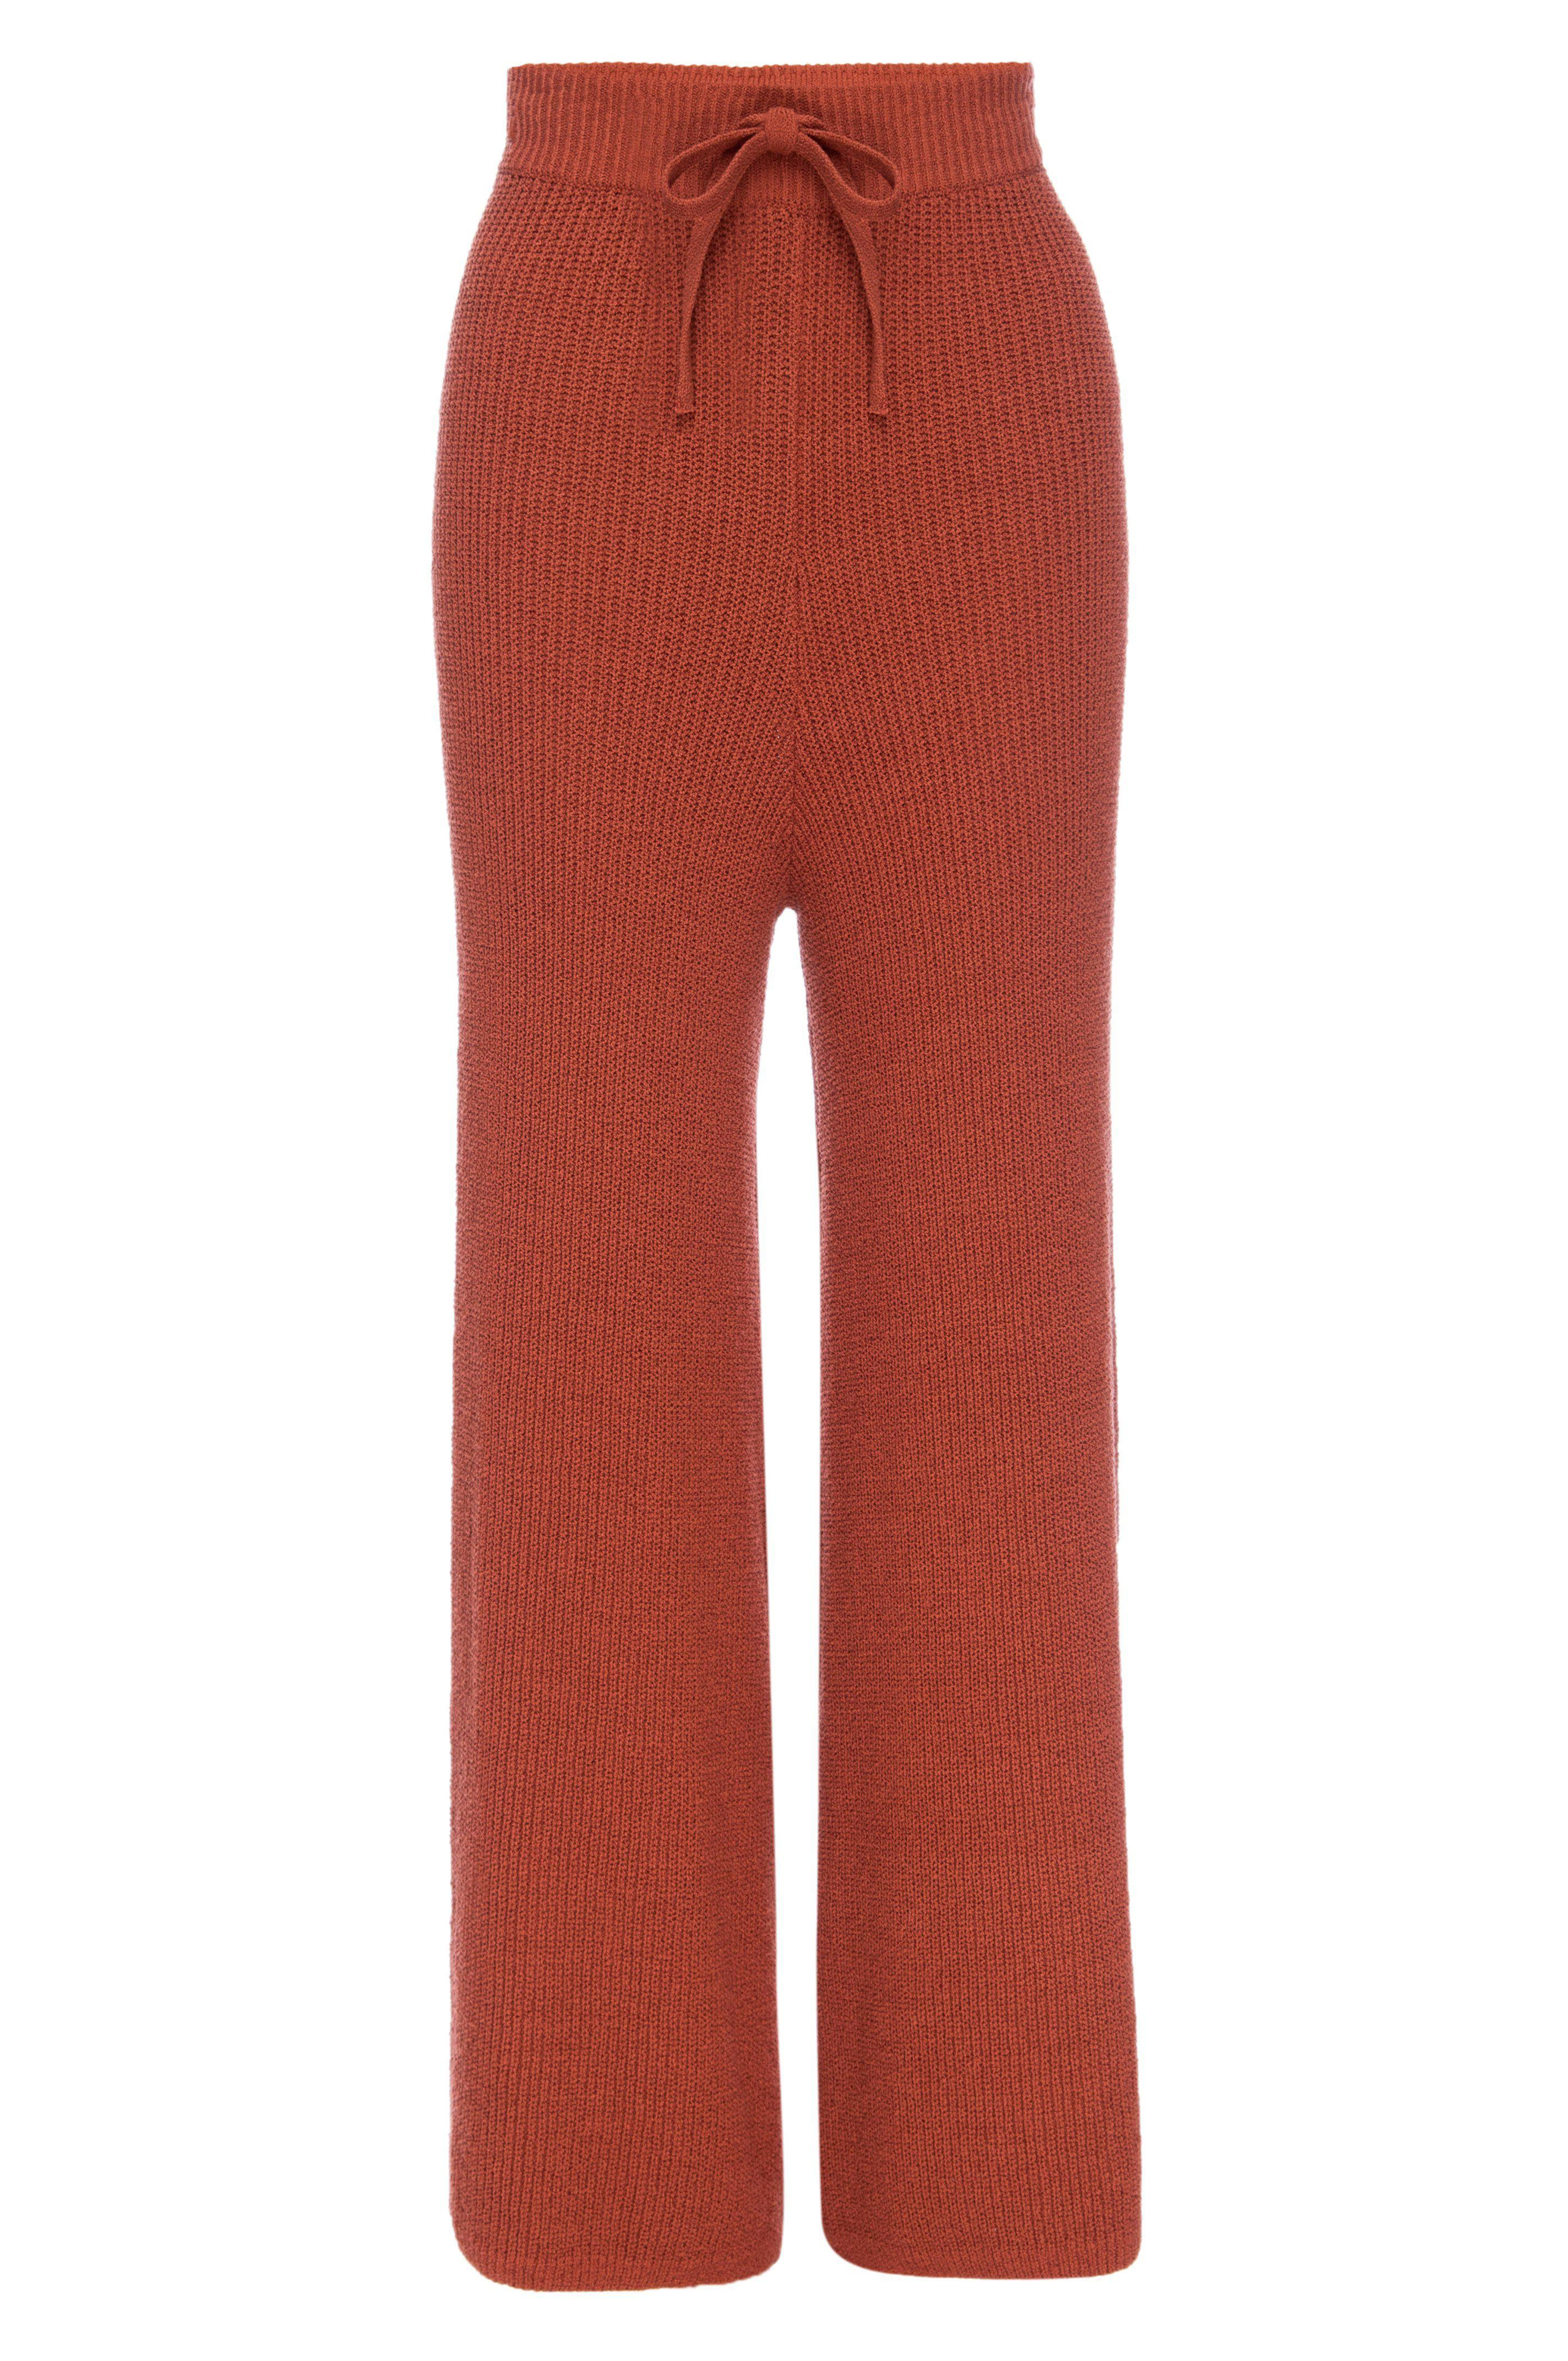 Martell Knit Pant 3